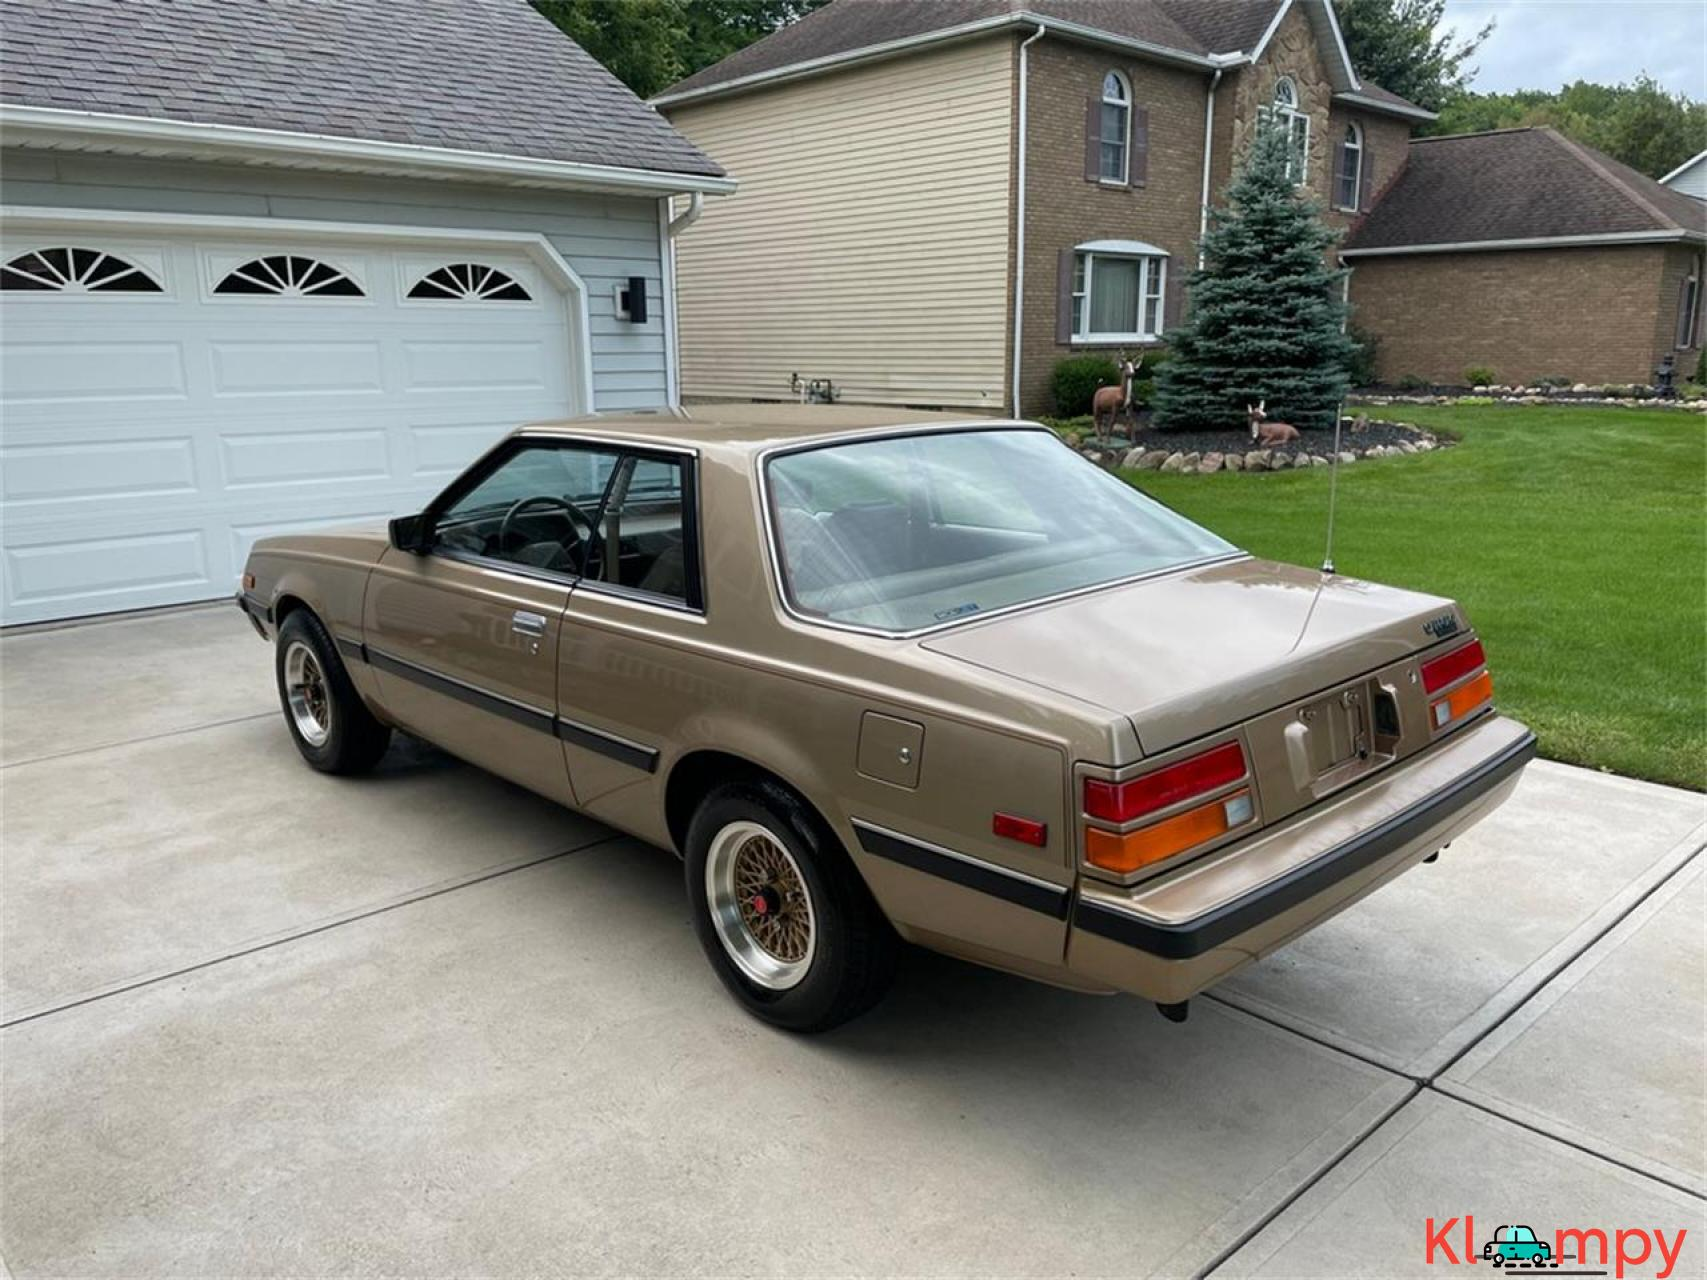 1983 Plymouth Sapporo 2.6L Engine - 7/18